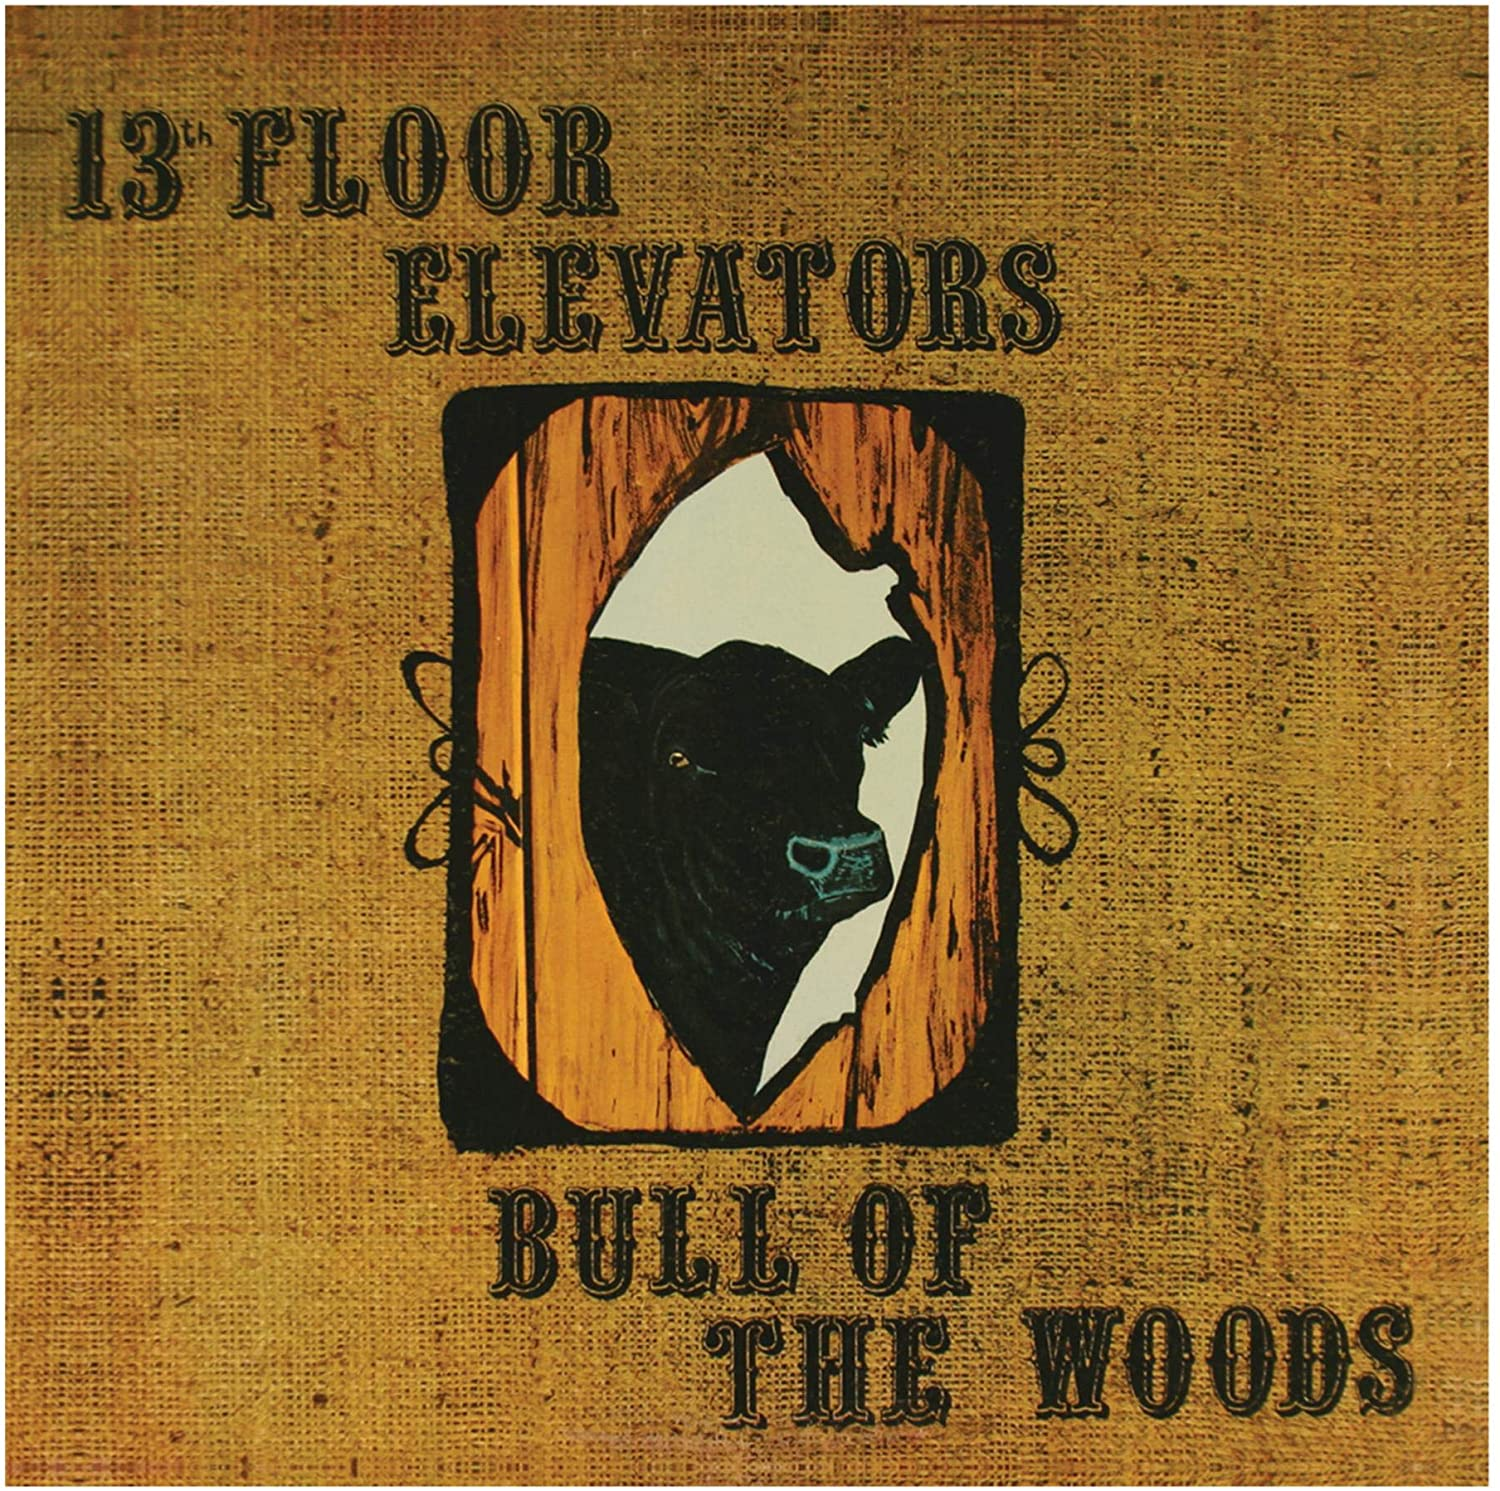 13th Floor Elevators/Bull Of The Woods (2CD Deluxe) [CD]